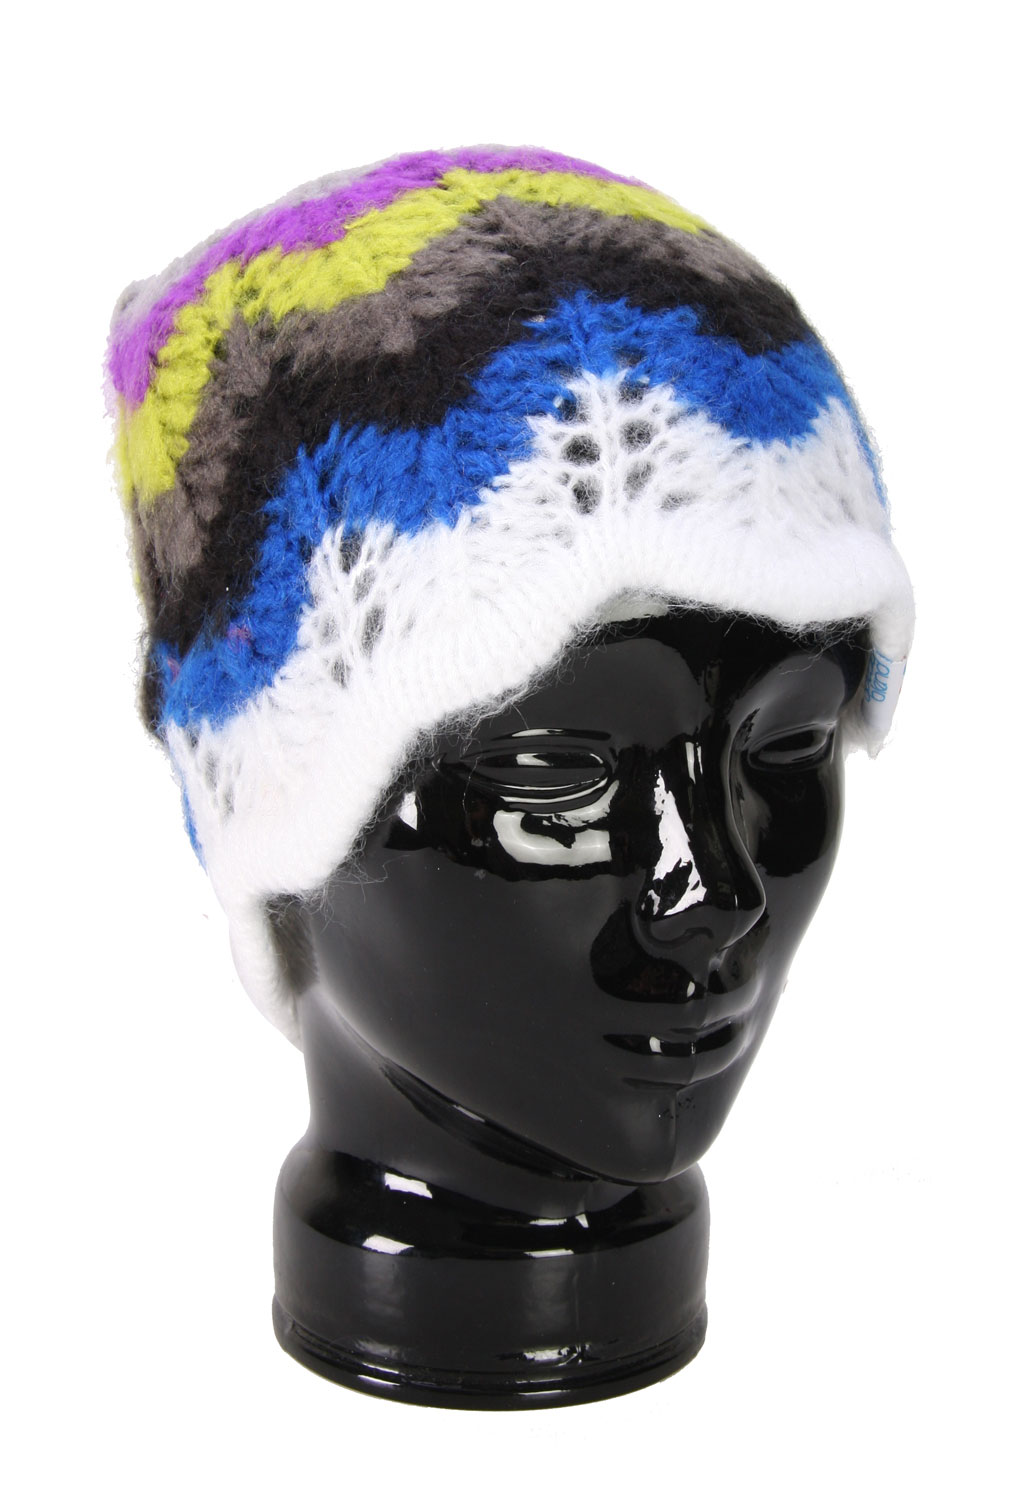 If your looking for a great looking way to keep your ears warm when you are out there toughing those winter conditions then this Special Blend Tulip Beanie would be great for you. The hat offers a multiple of great designs and beautiful colors. There are a ton of options so you should be able to find that hat that you will love to put on and wear on a daily basis. Treat that head of yours with a little respect and get it something great looking to keep it warm.Key Features of The Special Blend Tulip Women's Beanie: 100% Mohair Acrylic Hand Knit Woven Logo Label Hand Knitted Stripes - $11.95